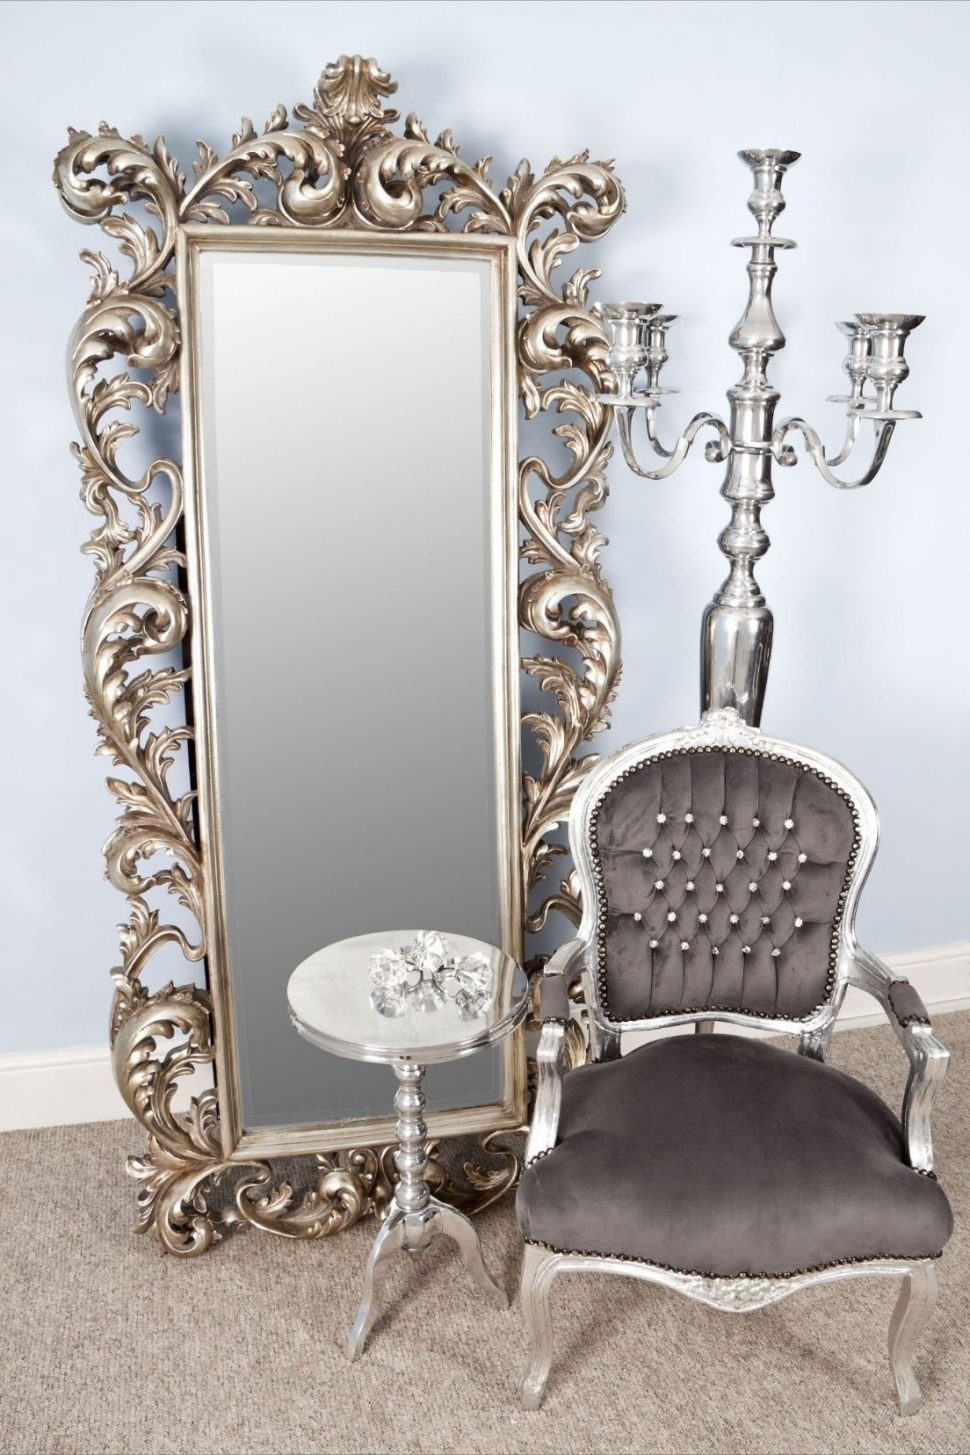 Bedroom Furniture Window Frame Mirror Antique Wall Mirrors Wall In Antique Dressing Mirror Full Length (Image 10 of 15)